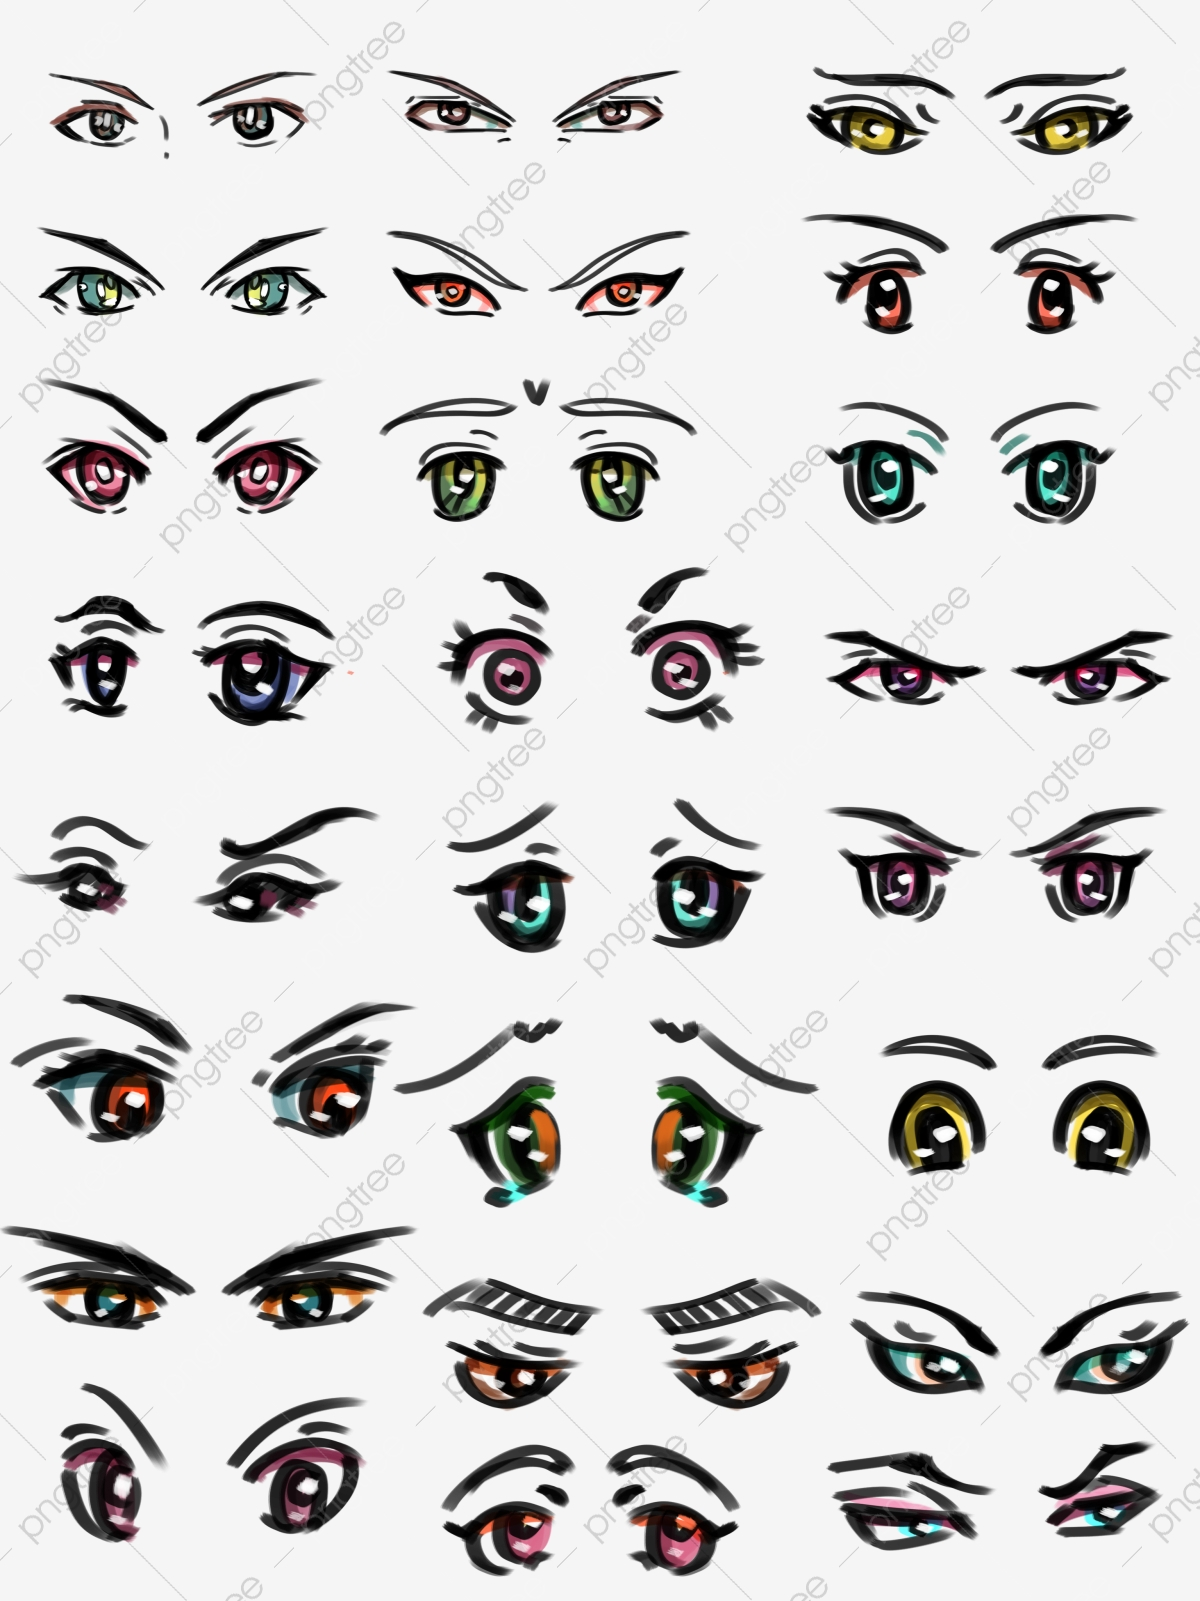 Cartoon Eyes Cartoon Eyes Vector Material Free Download